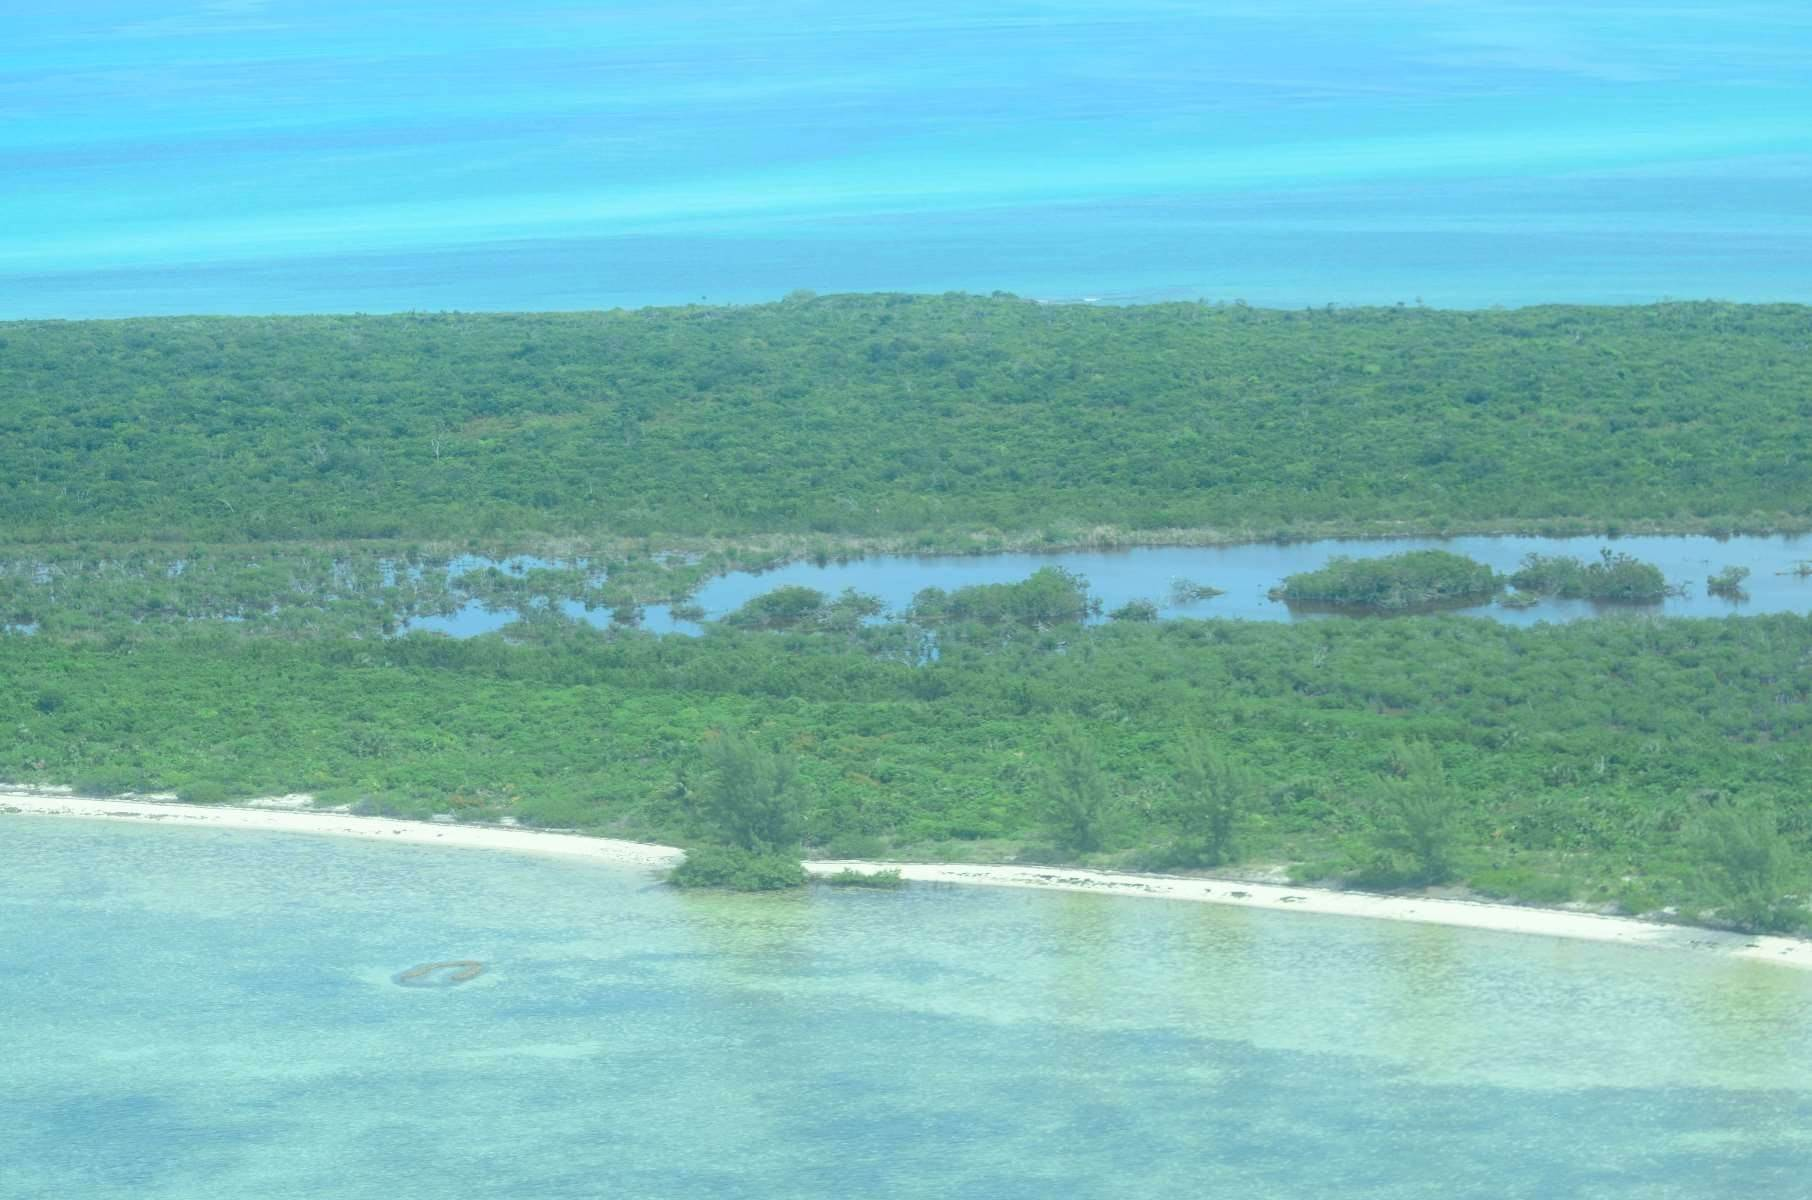 7. Private Islands por un Venta en Large Private Island in Abaco with approved development Plans - MLS 42074 Abaco, Bahamas